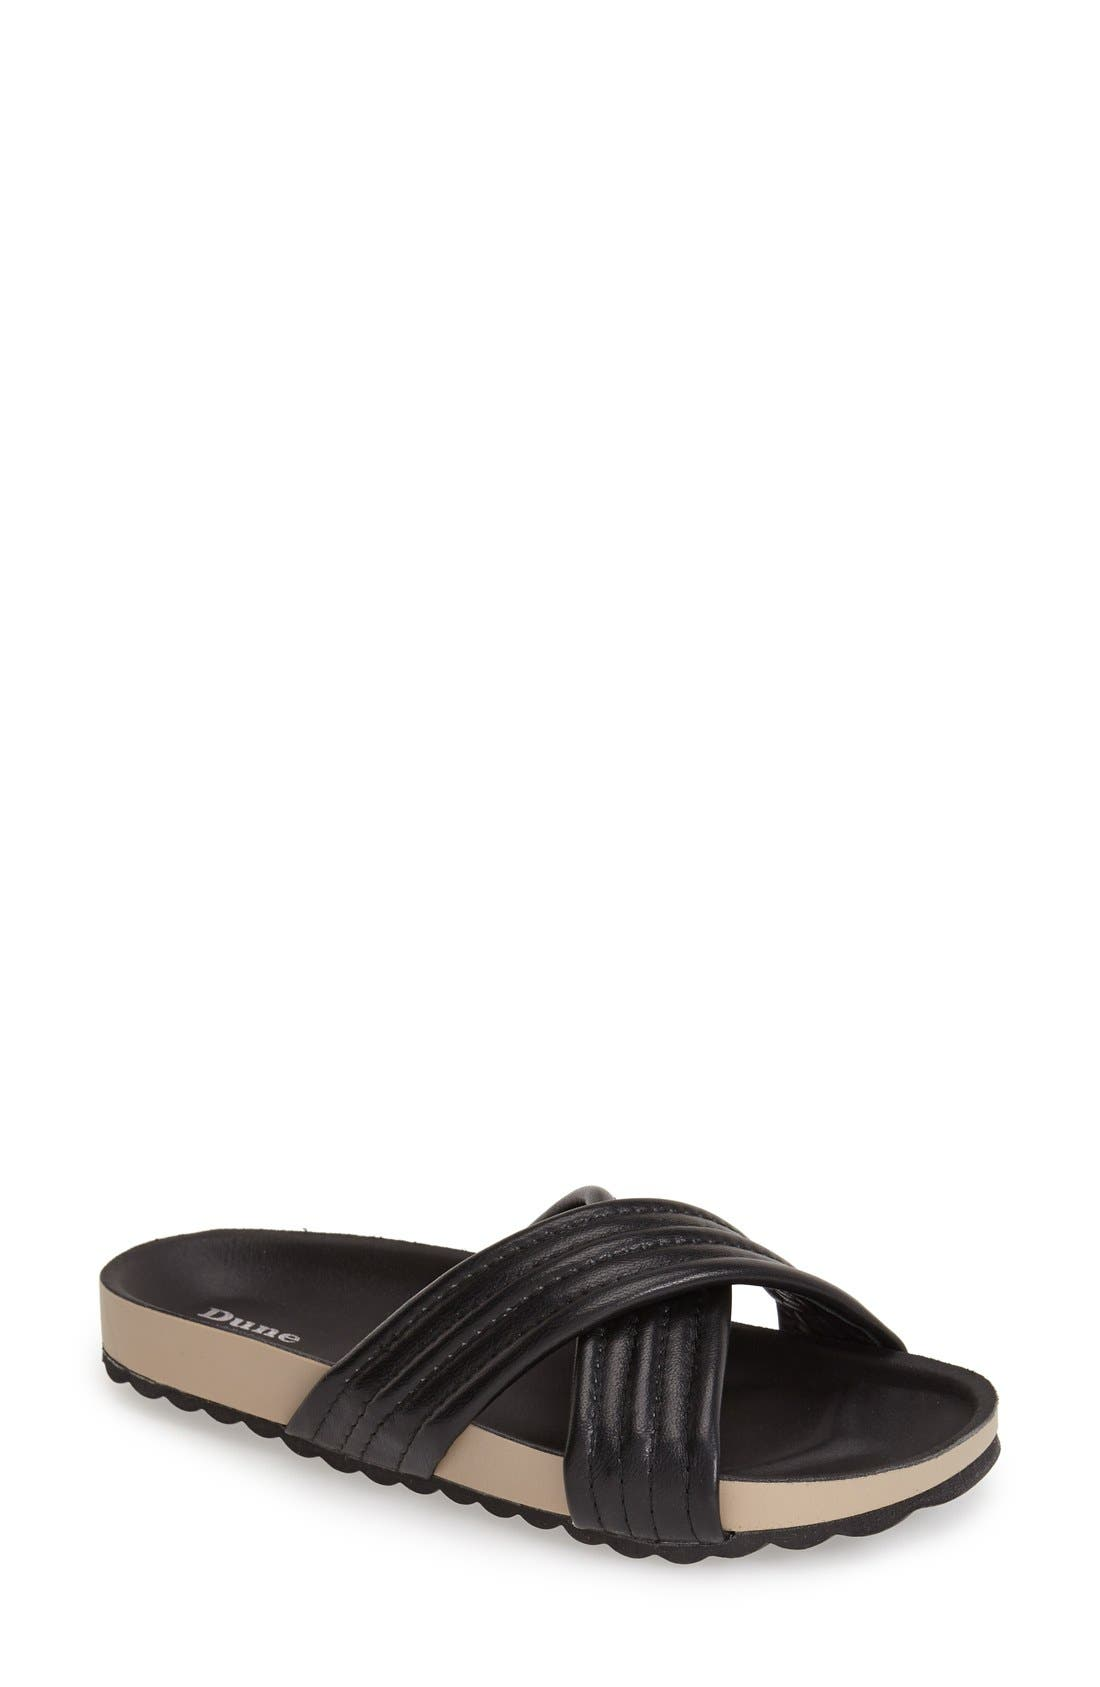 Main Image - Dune London 'Jolenes' Leather Slide Sandal (Women)